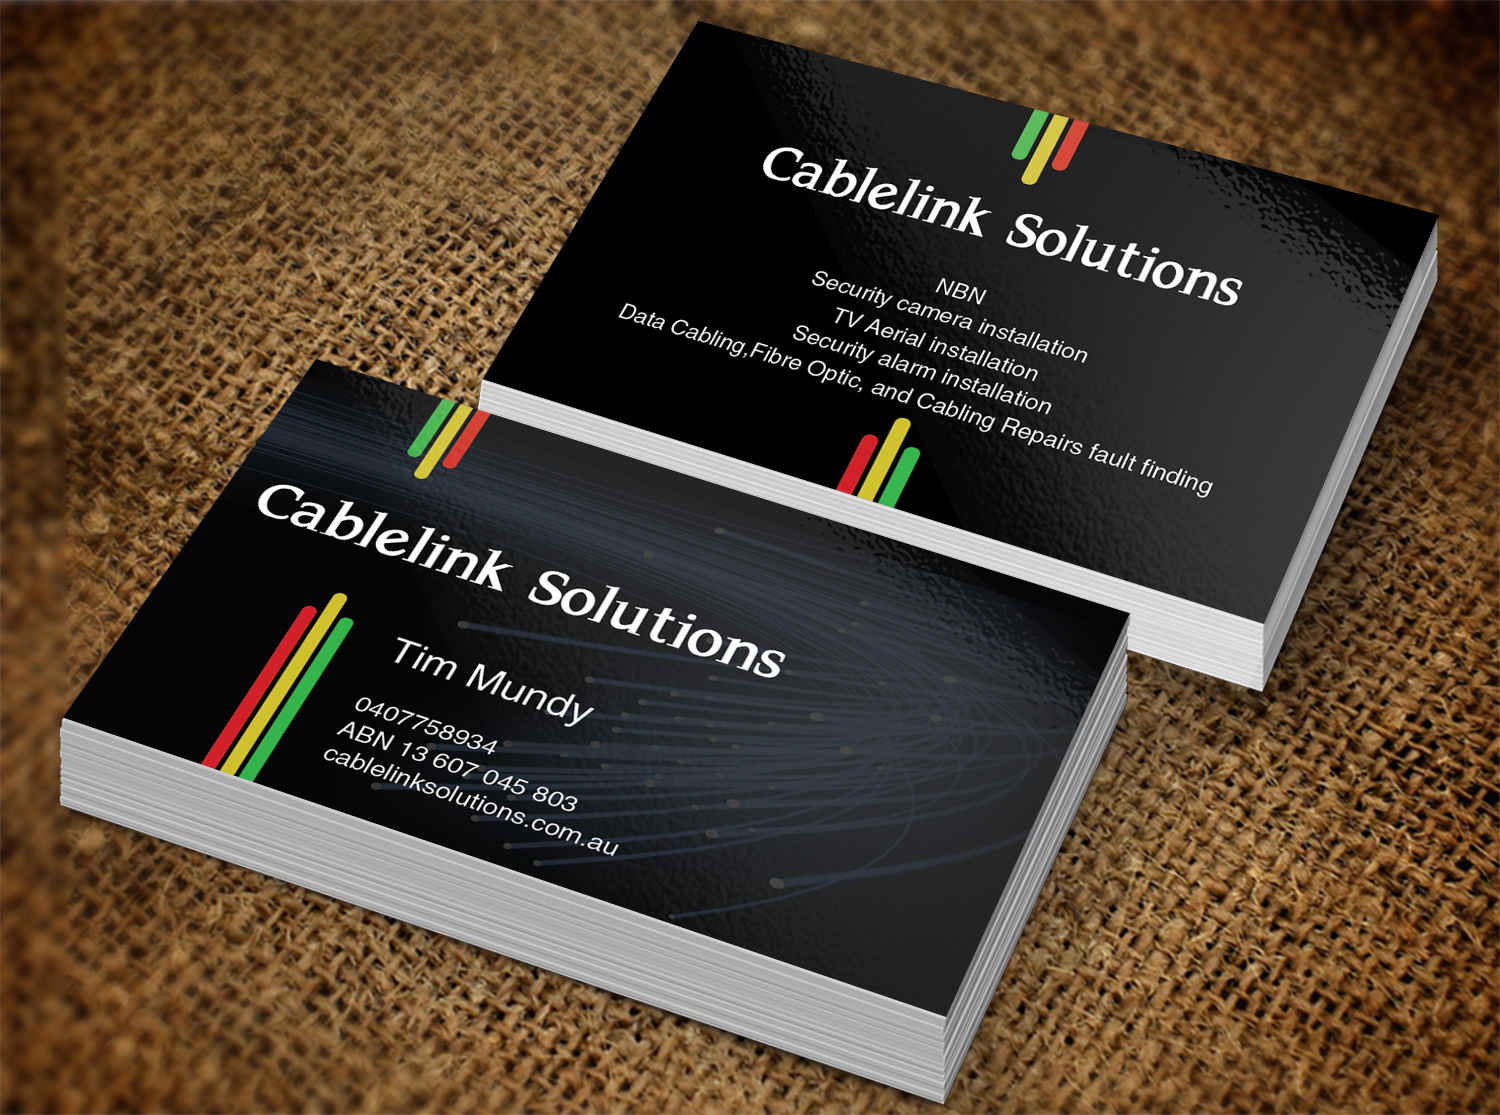 Business business card design for cablelink solutions by creation business card design by creation lanka for cablelink solutions design 7852880 colourmoves Choice Image